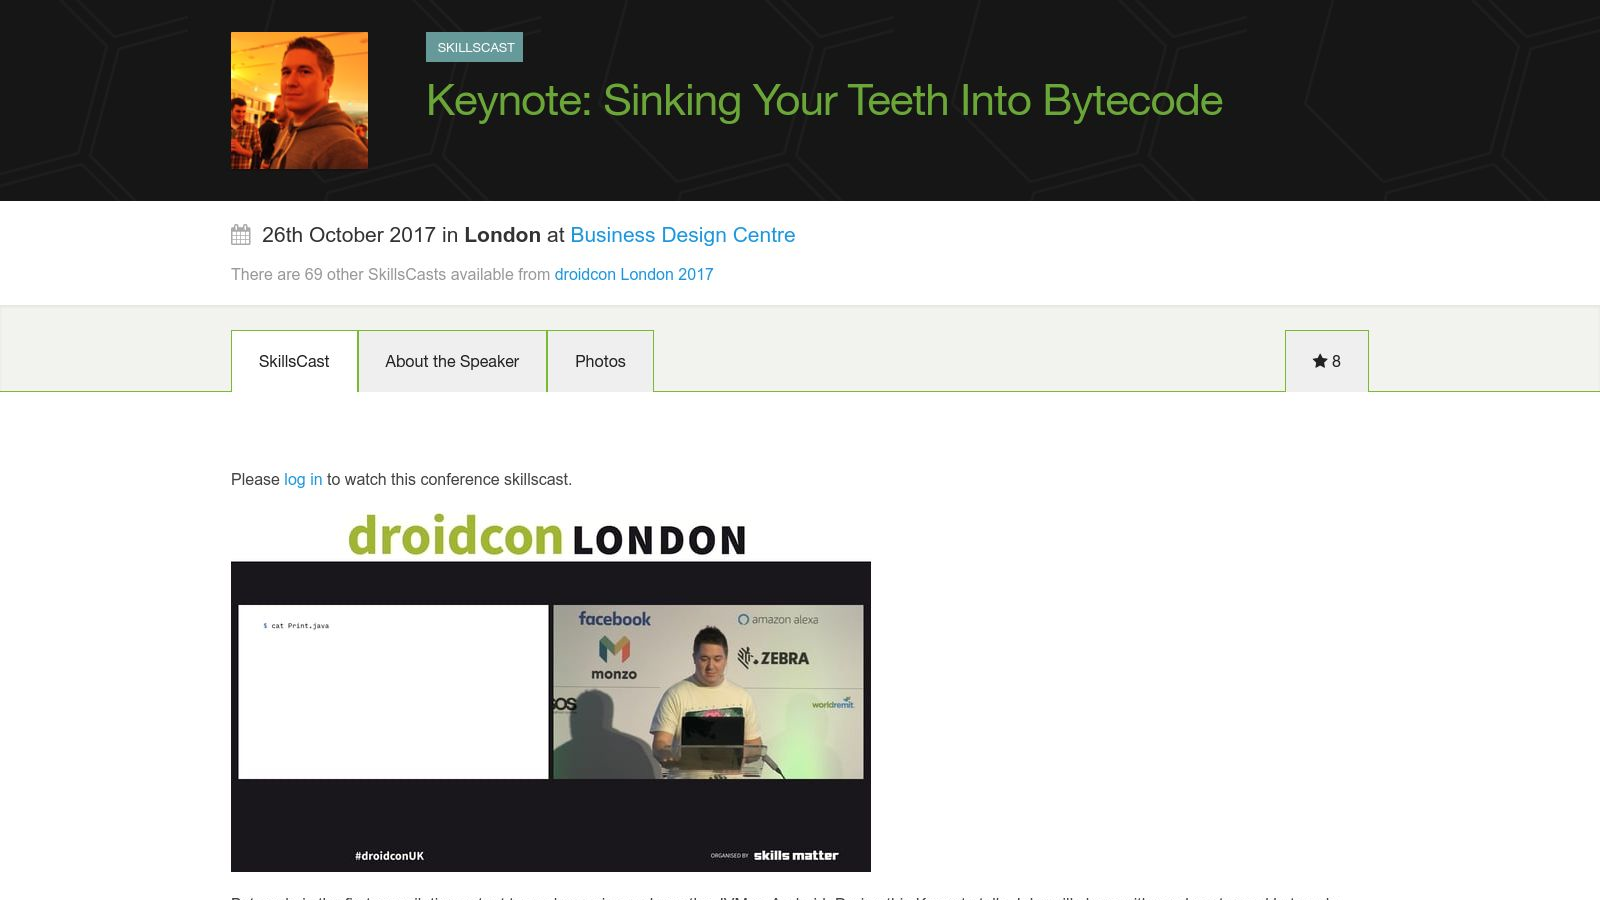 Sinking Your Teeth Into Bytecode